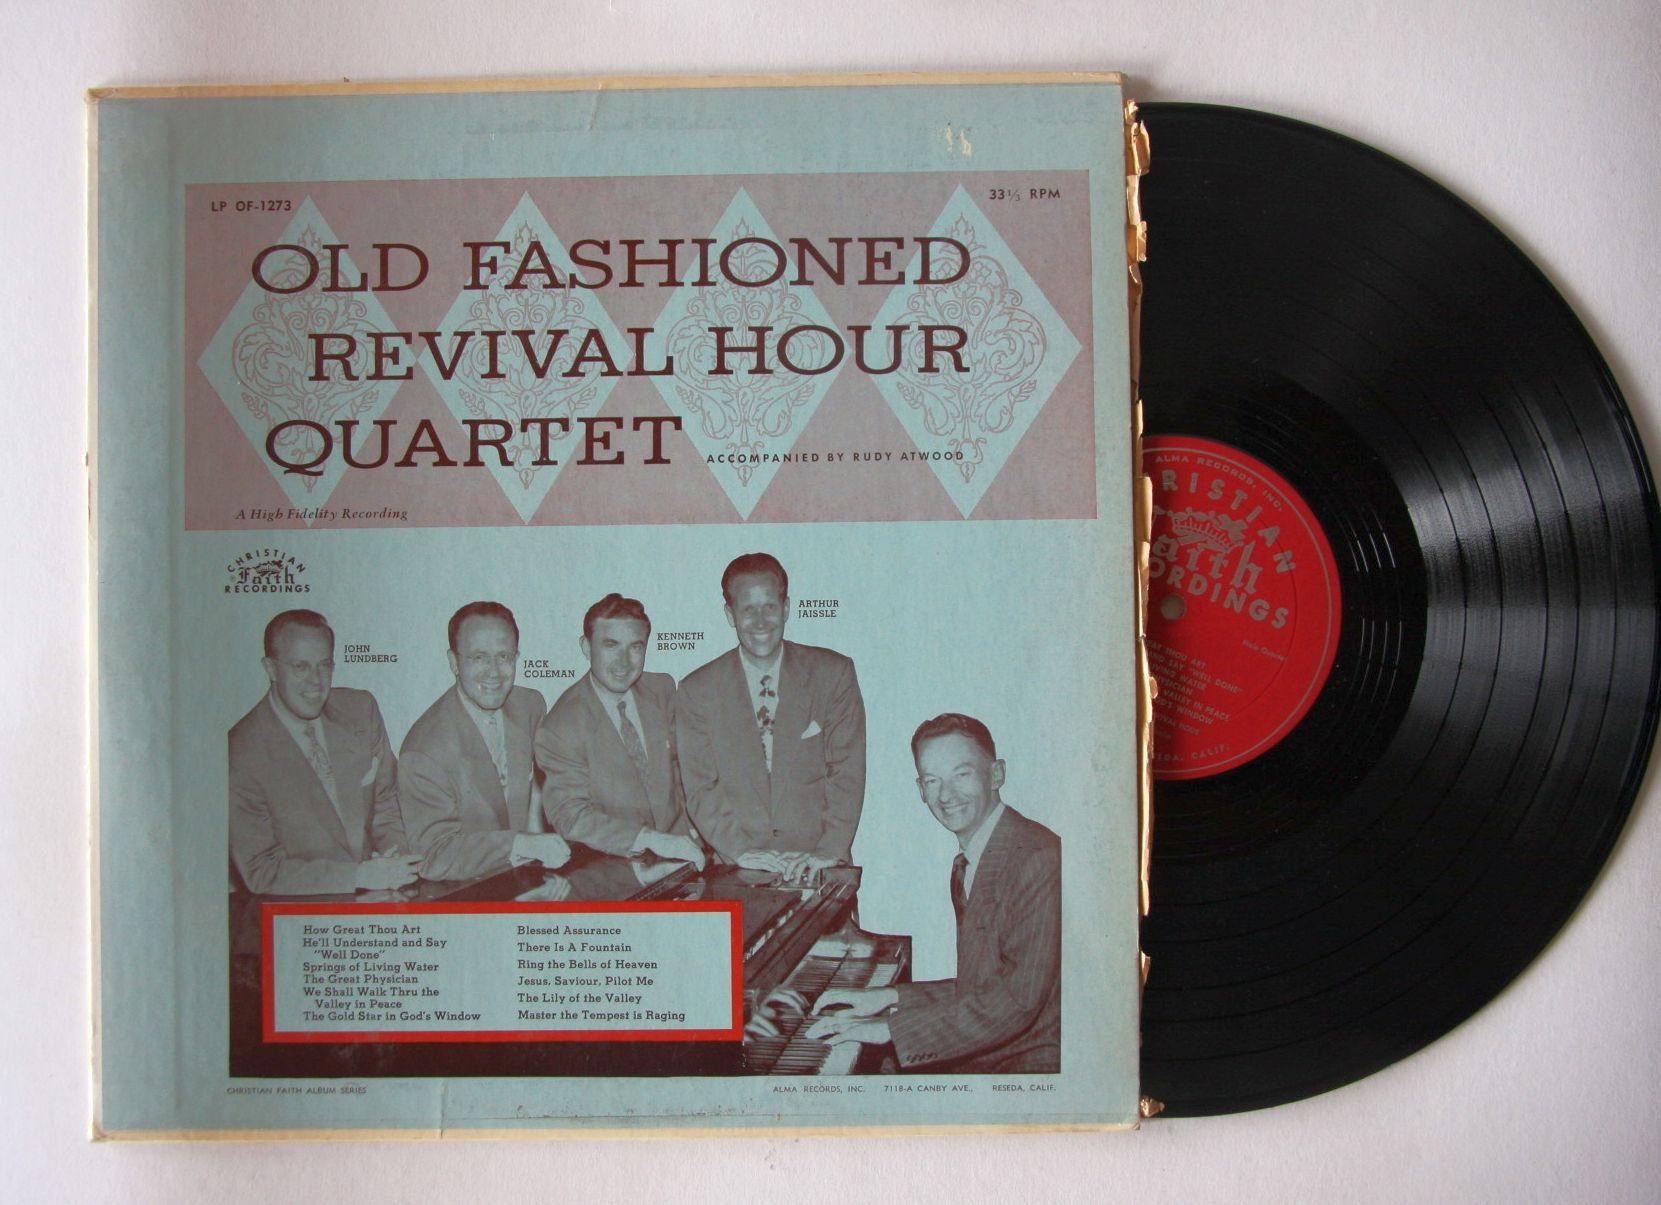 Old Fashioned Revival Hour Quartet